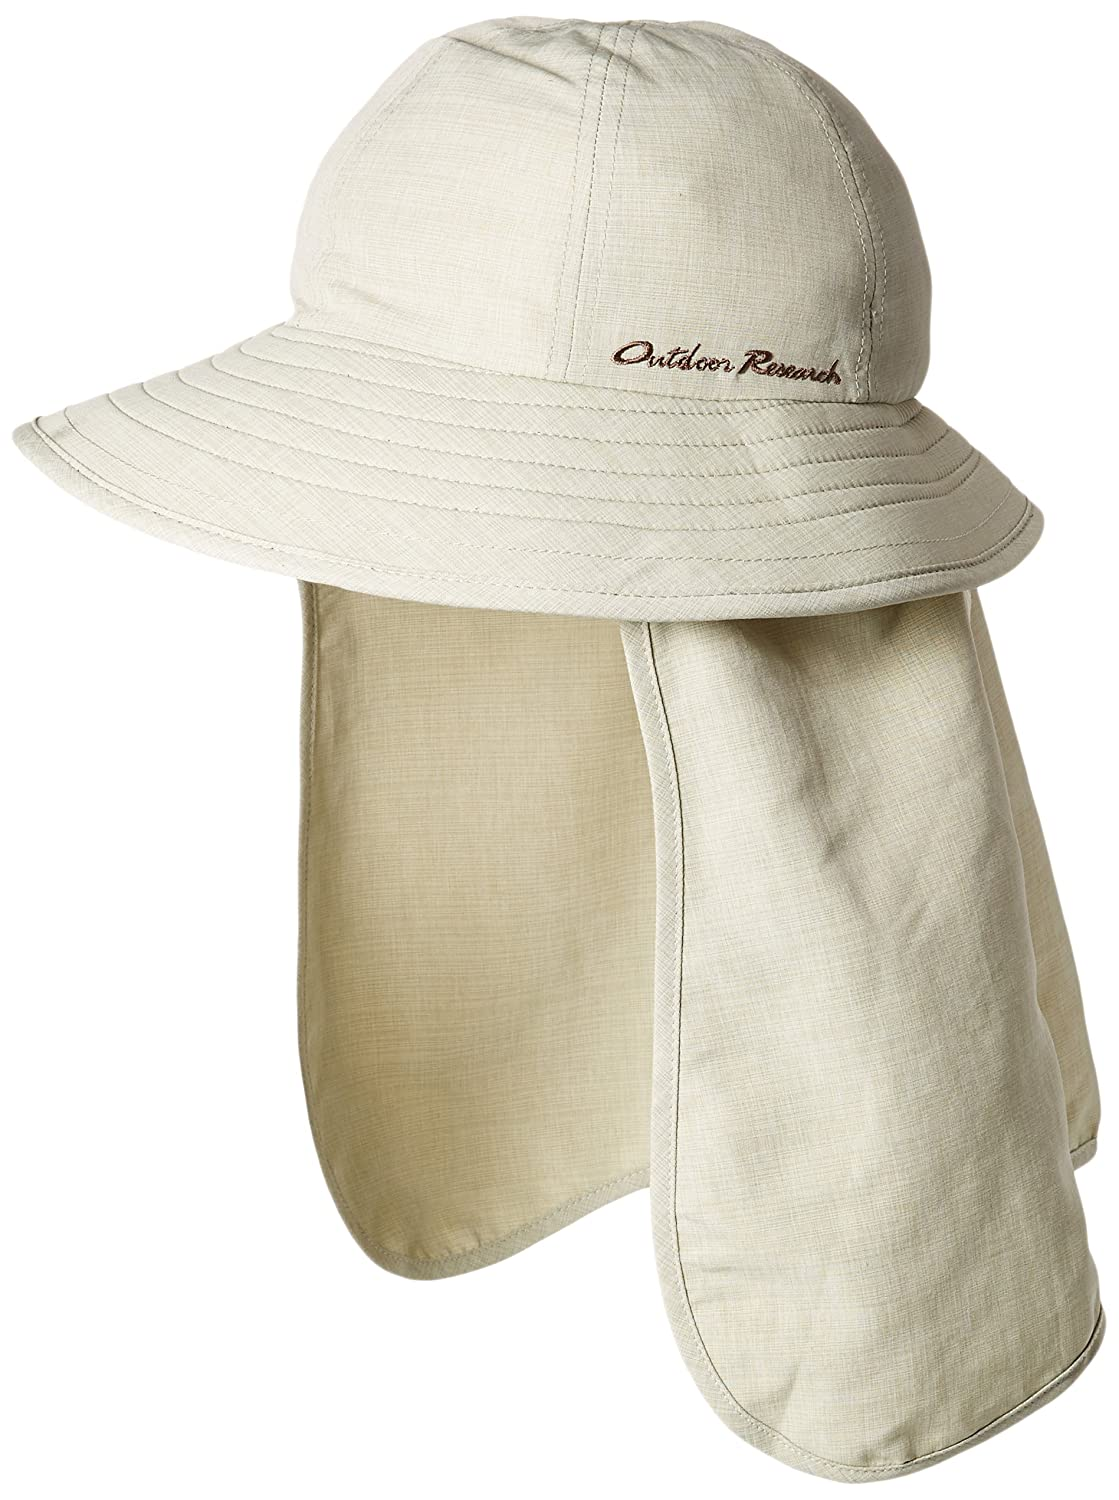 4bbd7fa065c Amazon.com   Outdoor Research Women s Blush Sun Hat   Sports   Outdoors